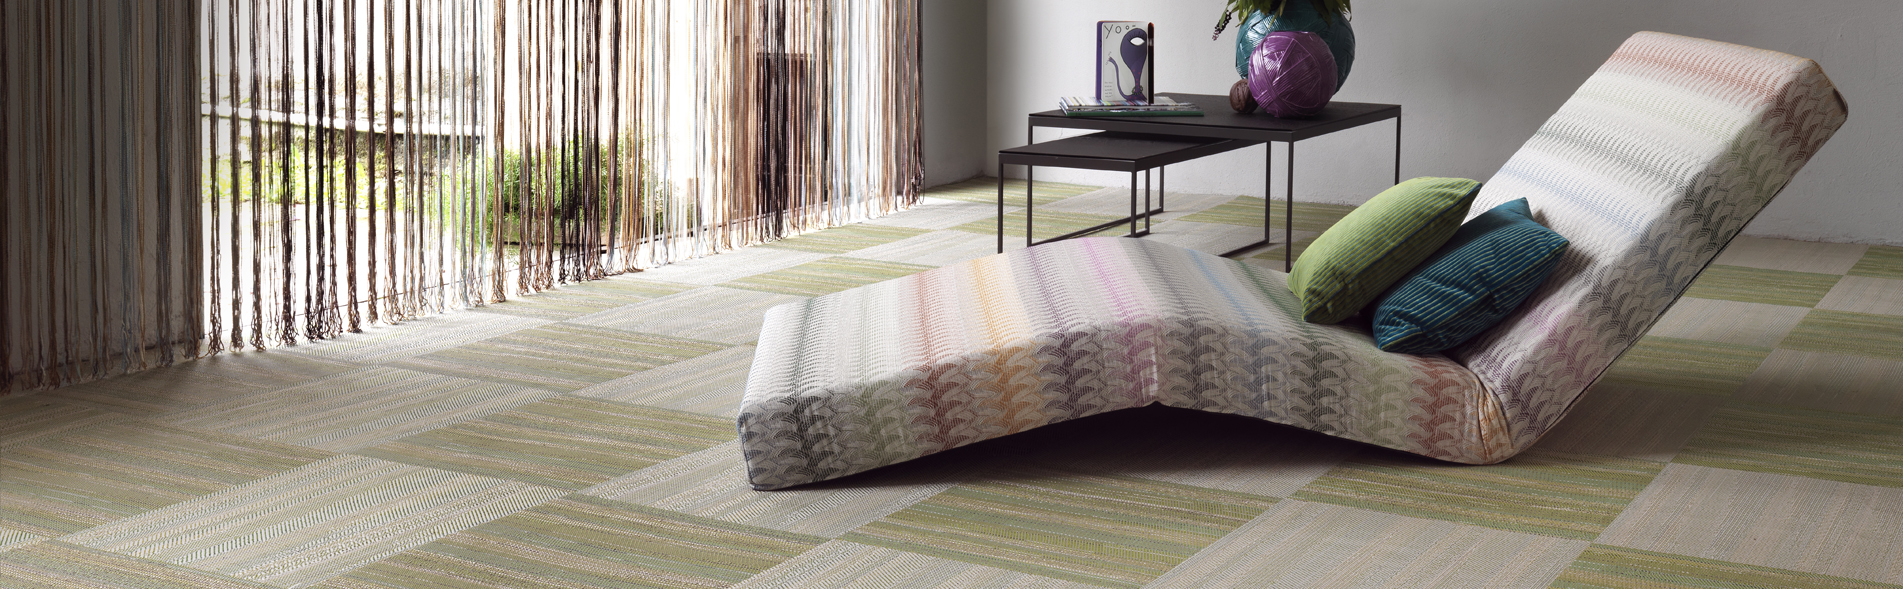 BOLON By Missoni - Gallery (4)